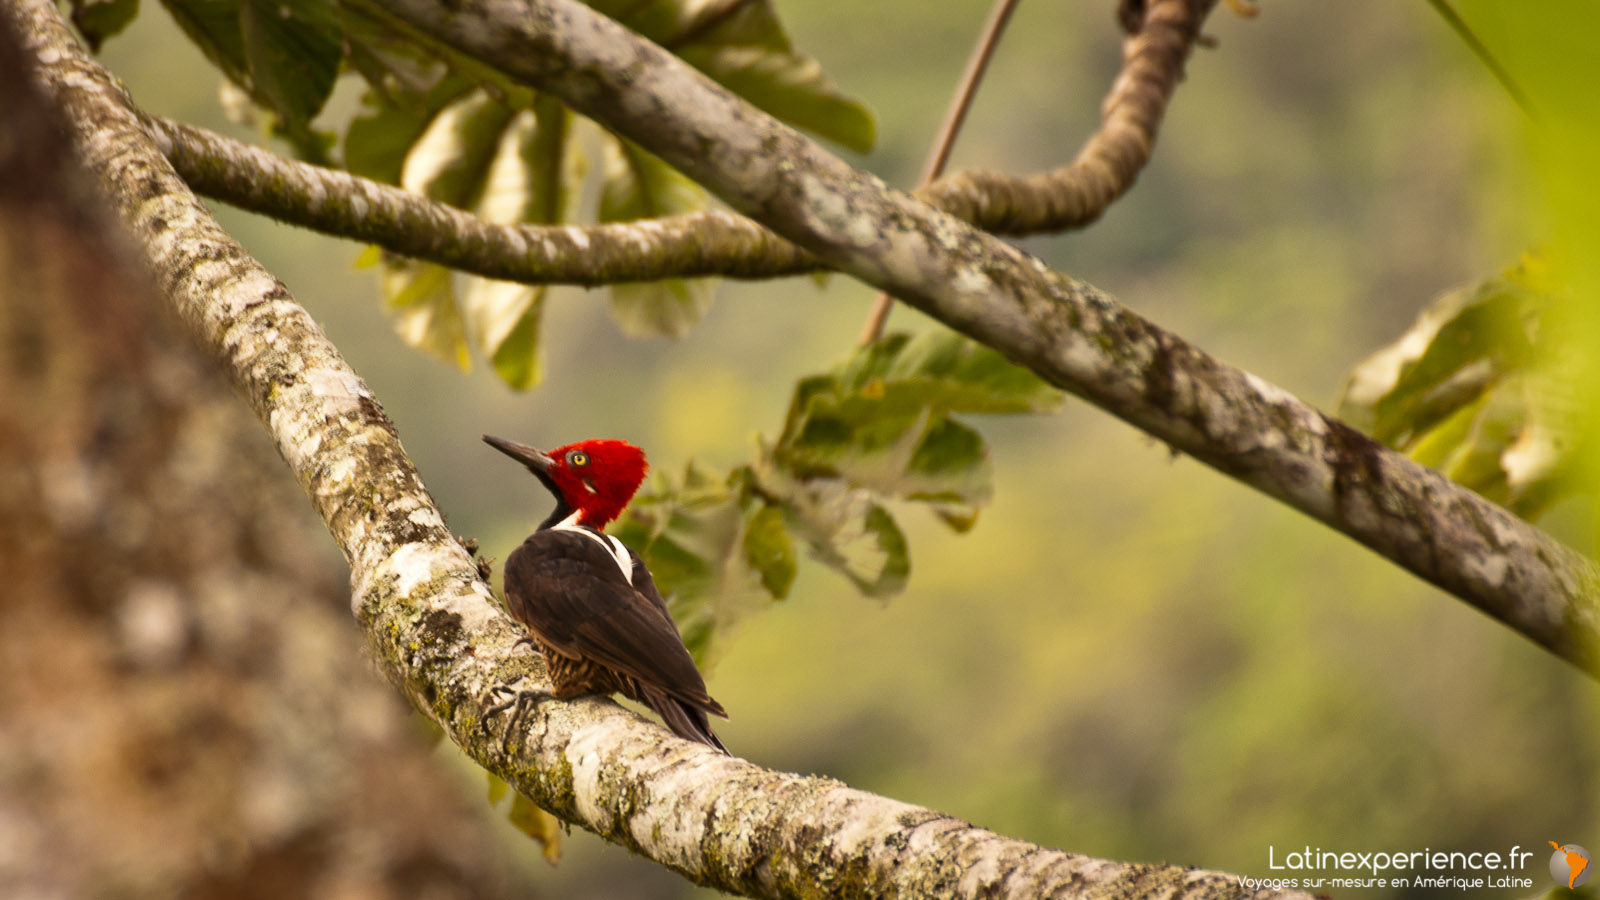 Equateur - Mindo - Woody wood Pecker - voyage photo - Latinexperience voyages